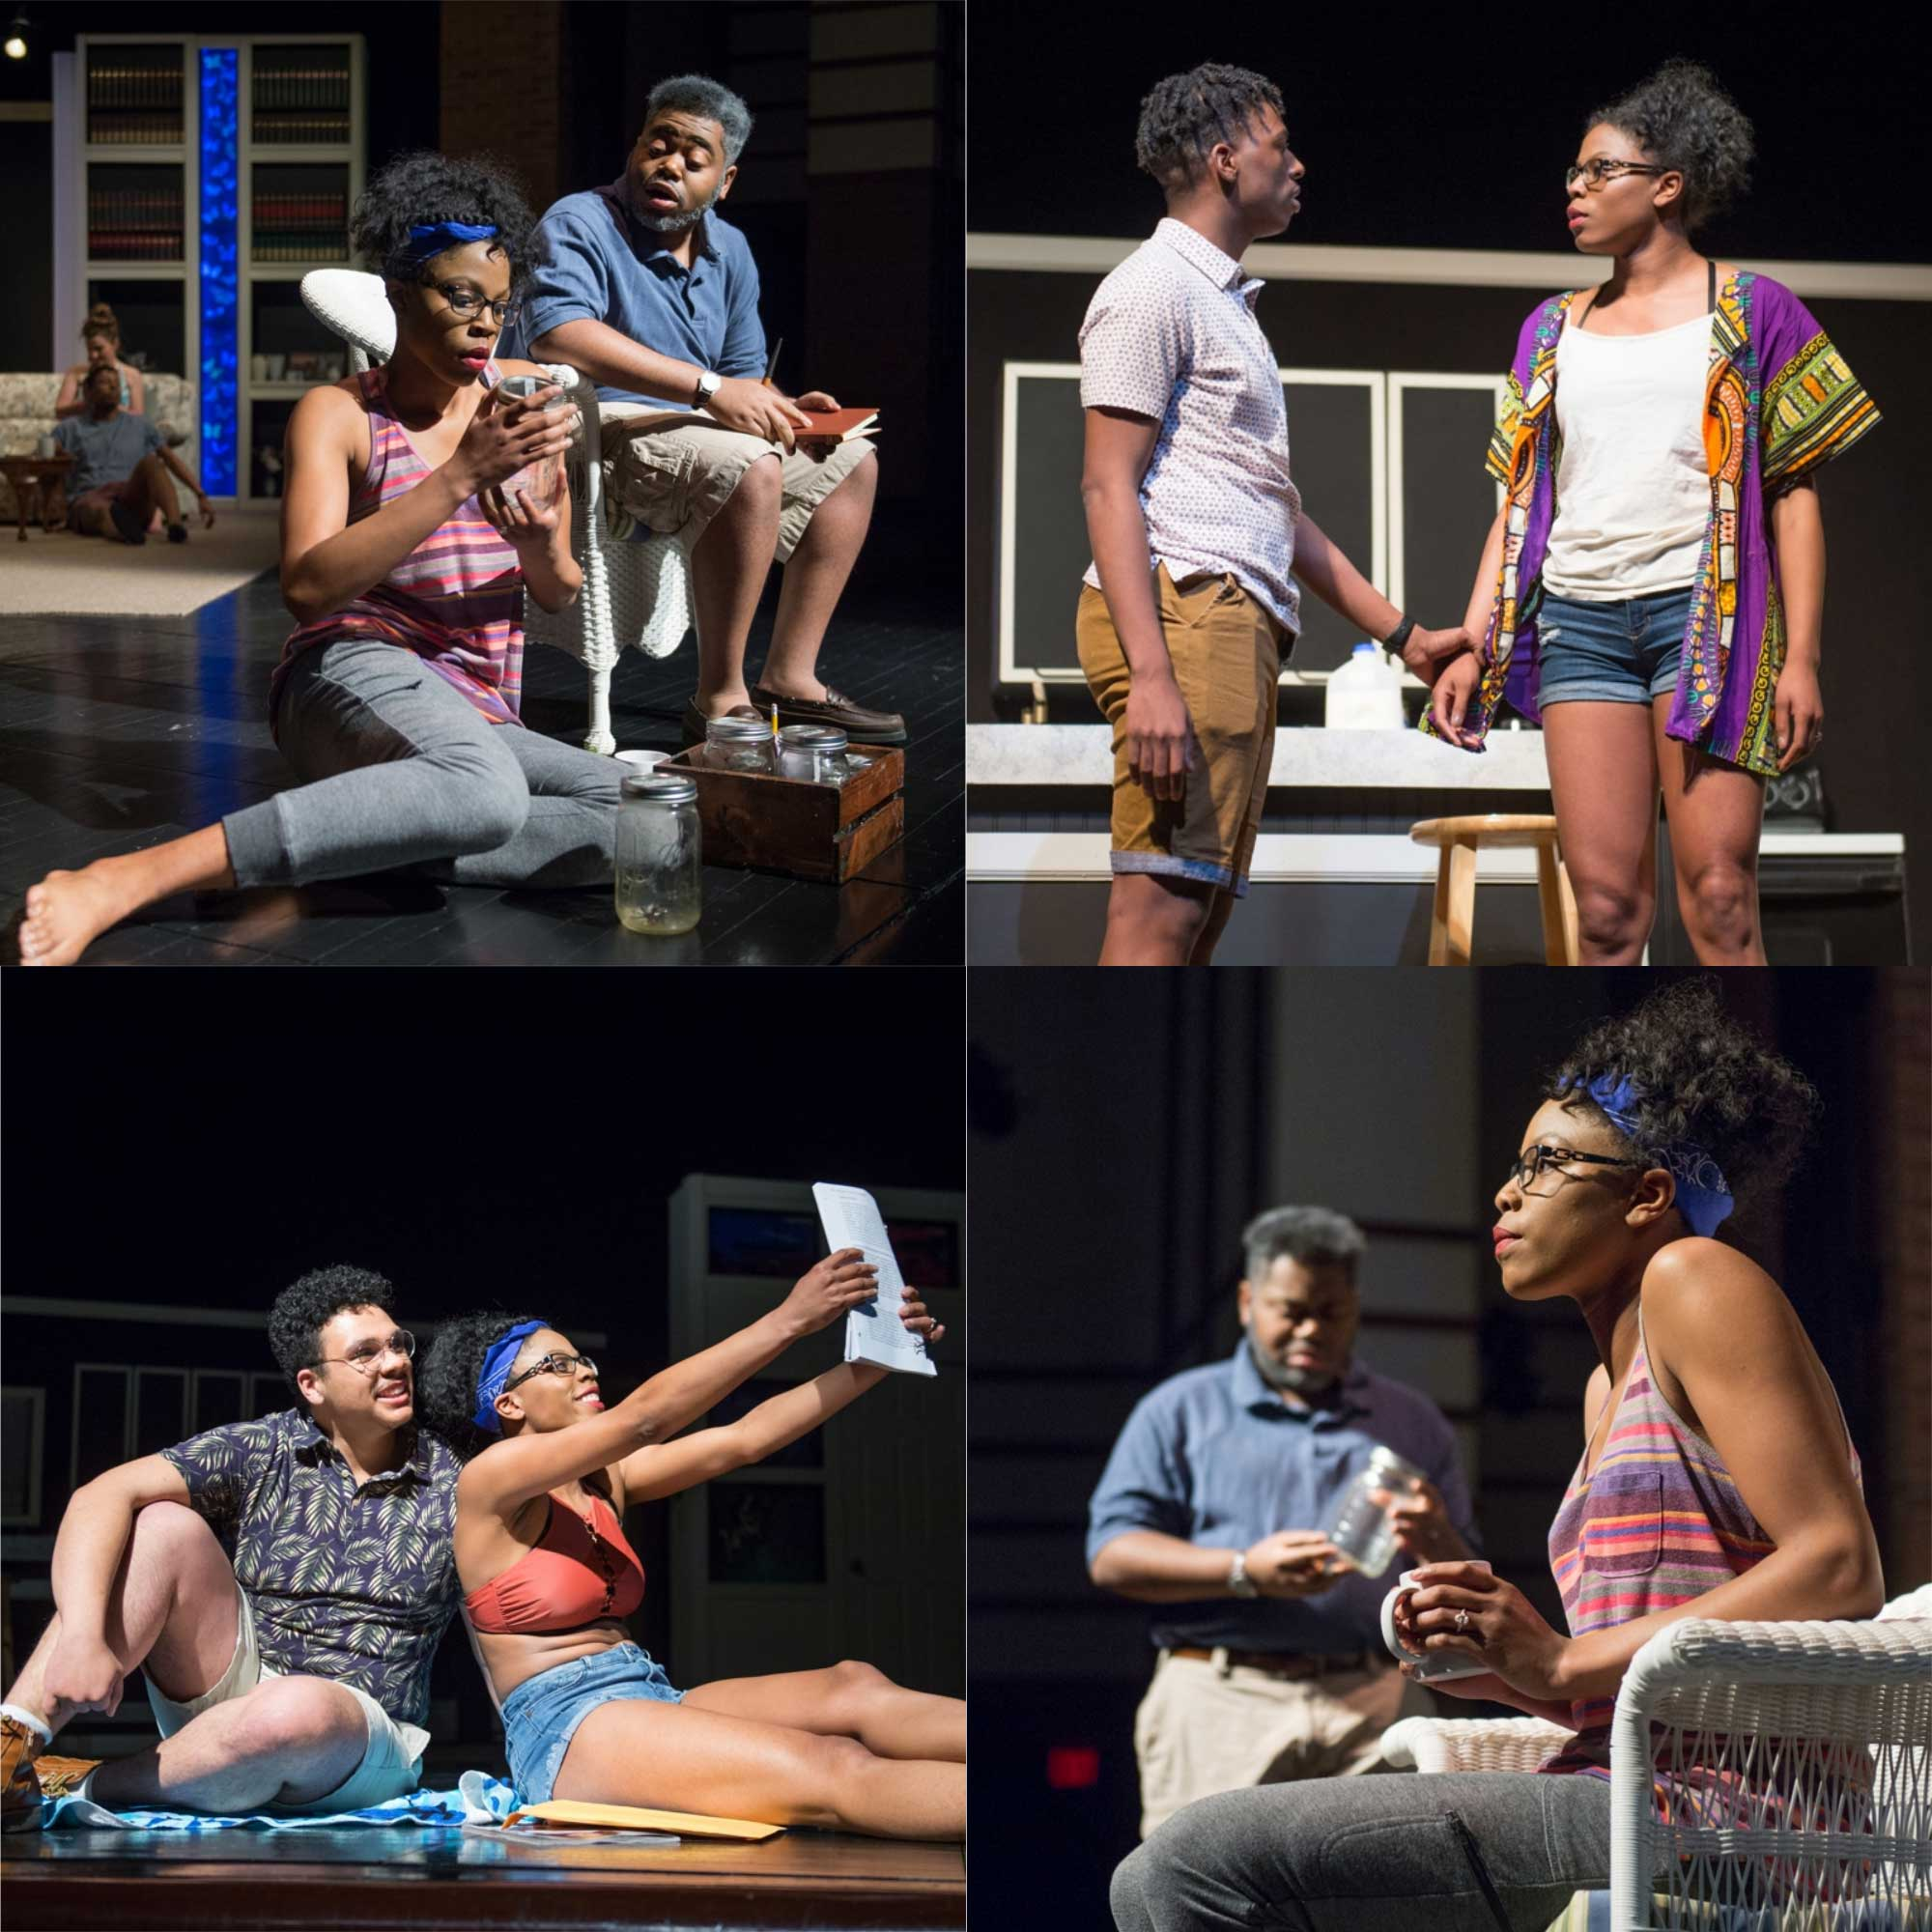 Collage of images from Theatre production of Stick Fly